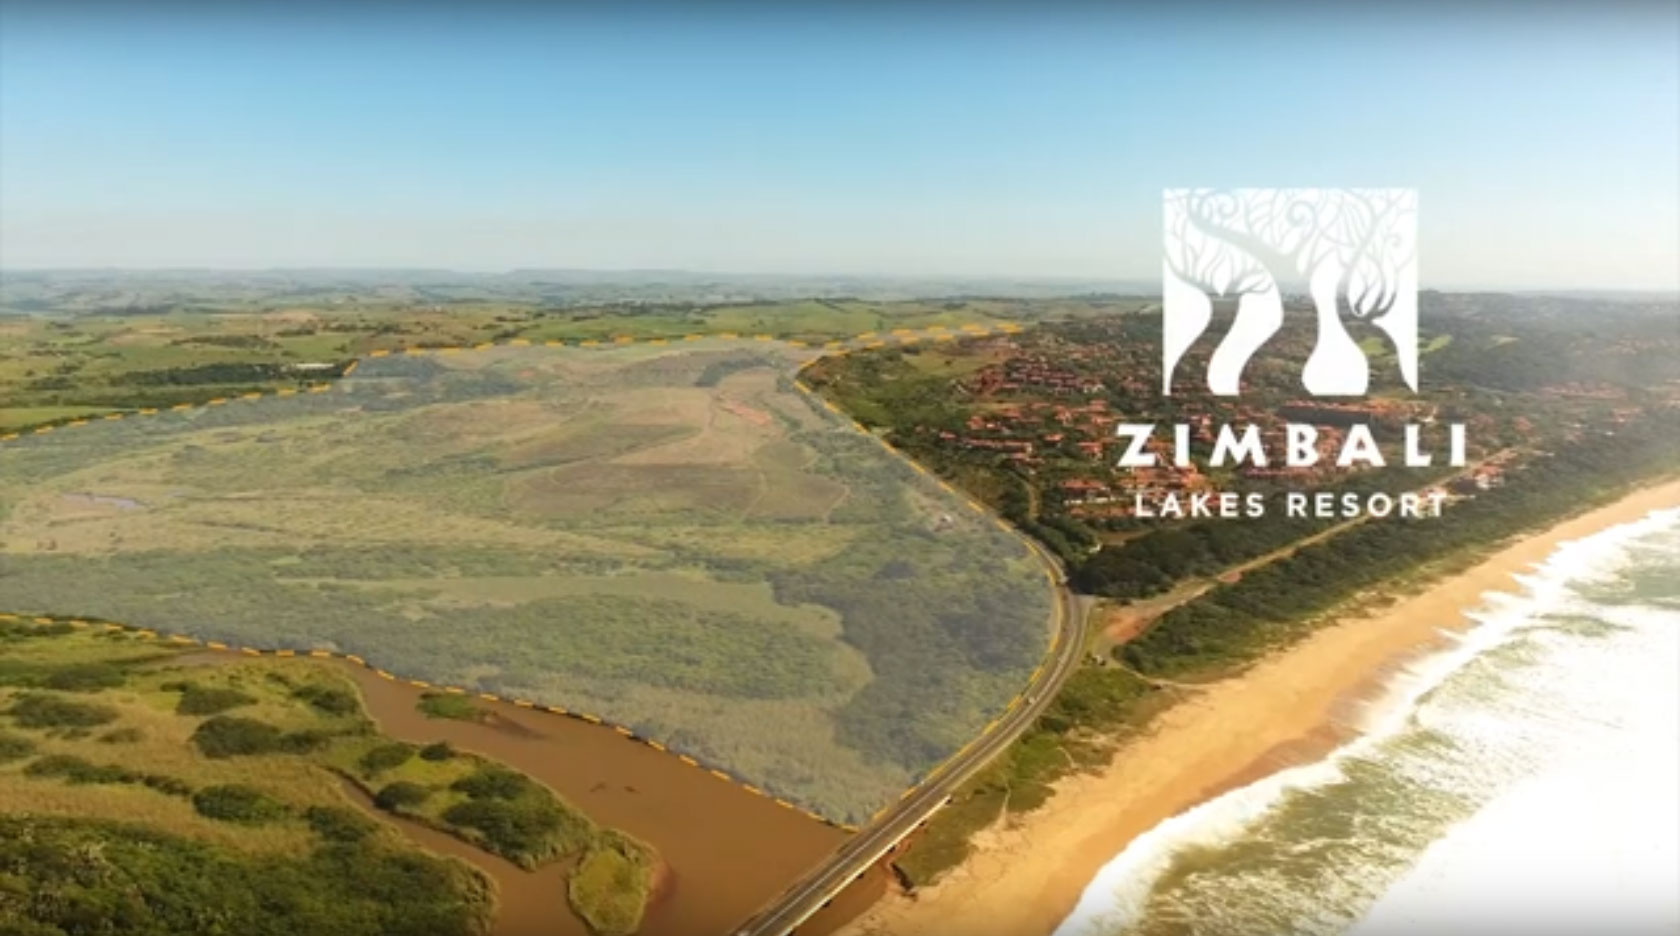 Untitled 1 - Zimbali Lakes Resort - Development Site available for development